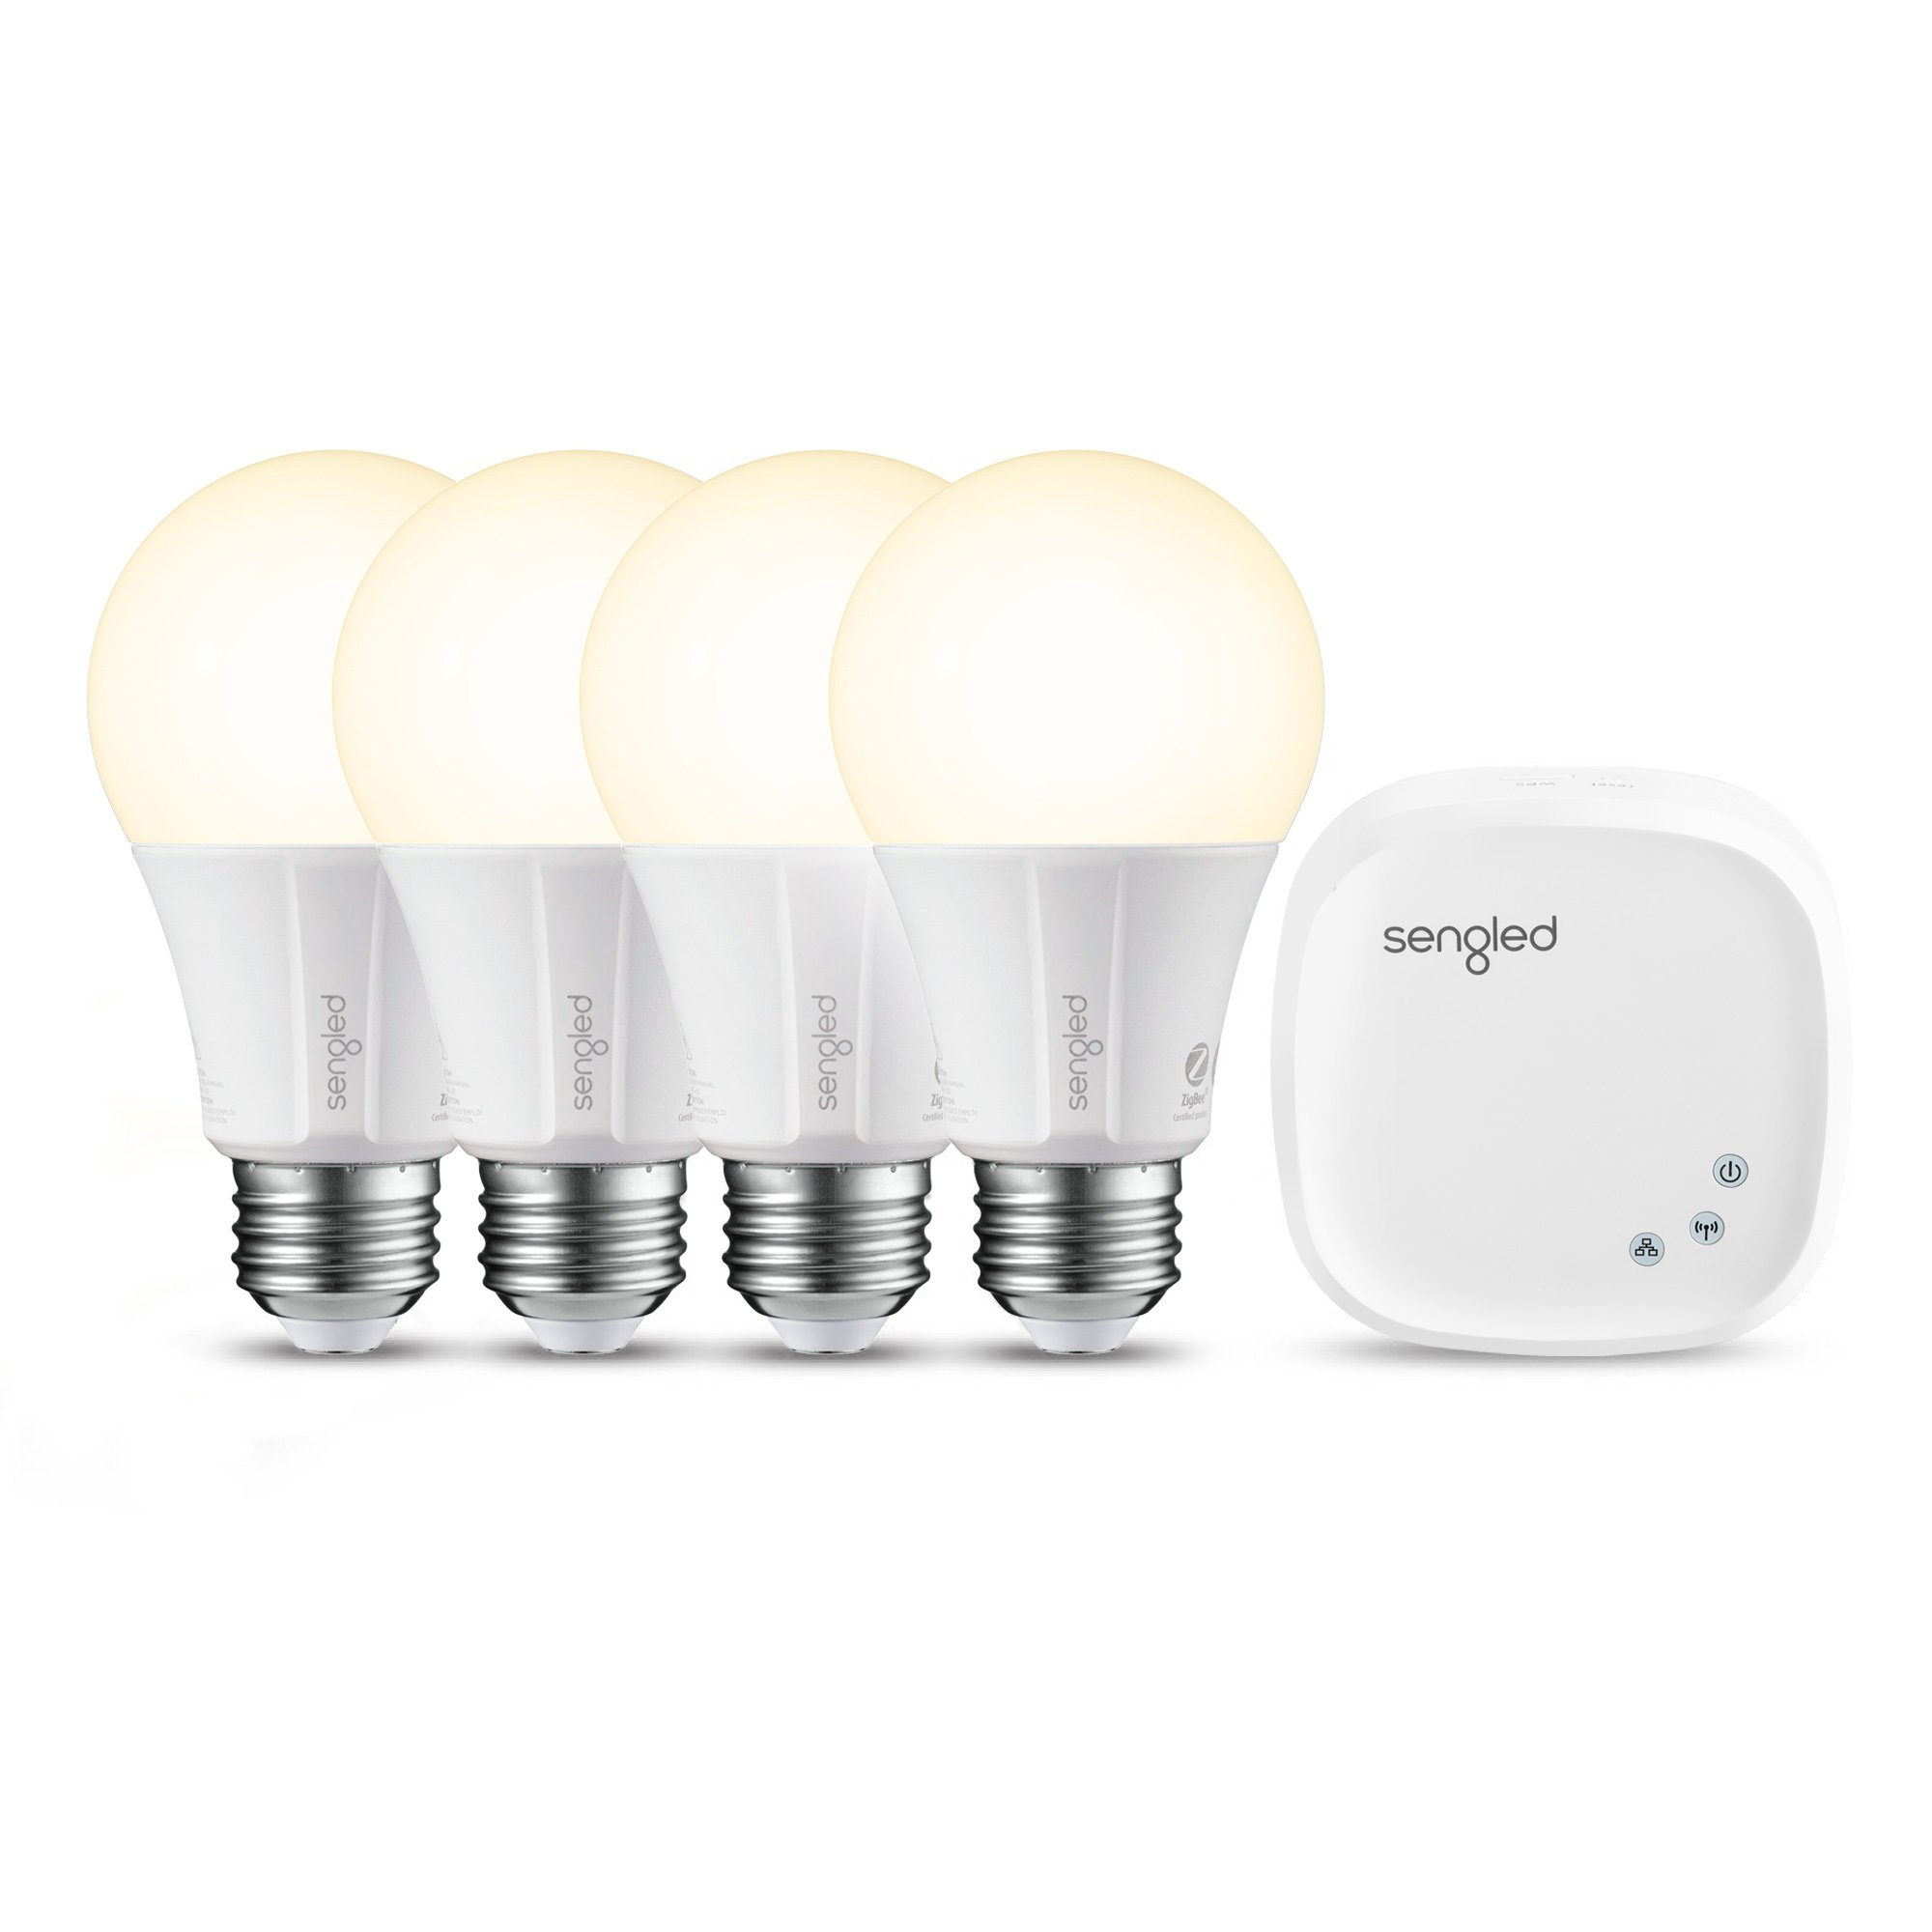 Sengled Element Classic Smart LED Light Bulbs, A19 Dimmable Soft White 2700K 60W Equivalent, Starter Kit (4 A19 Bulbs + hub), Works with Alexa/Google Assistant/IFTTT